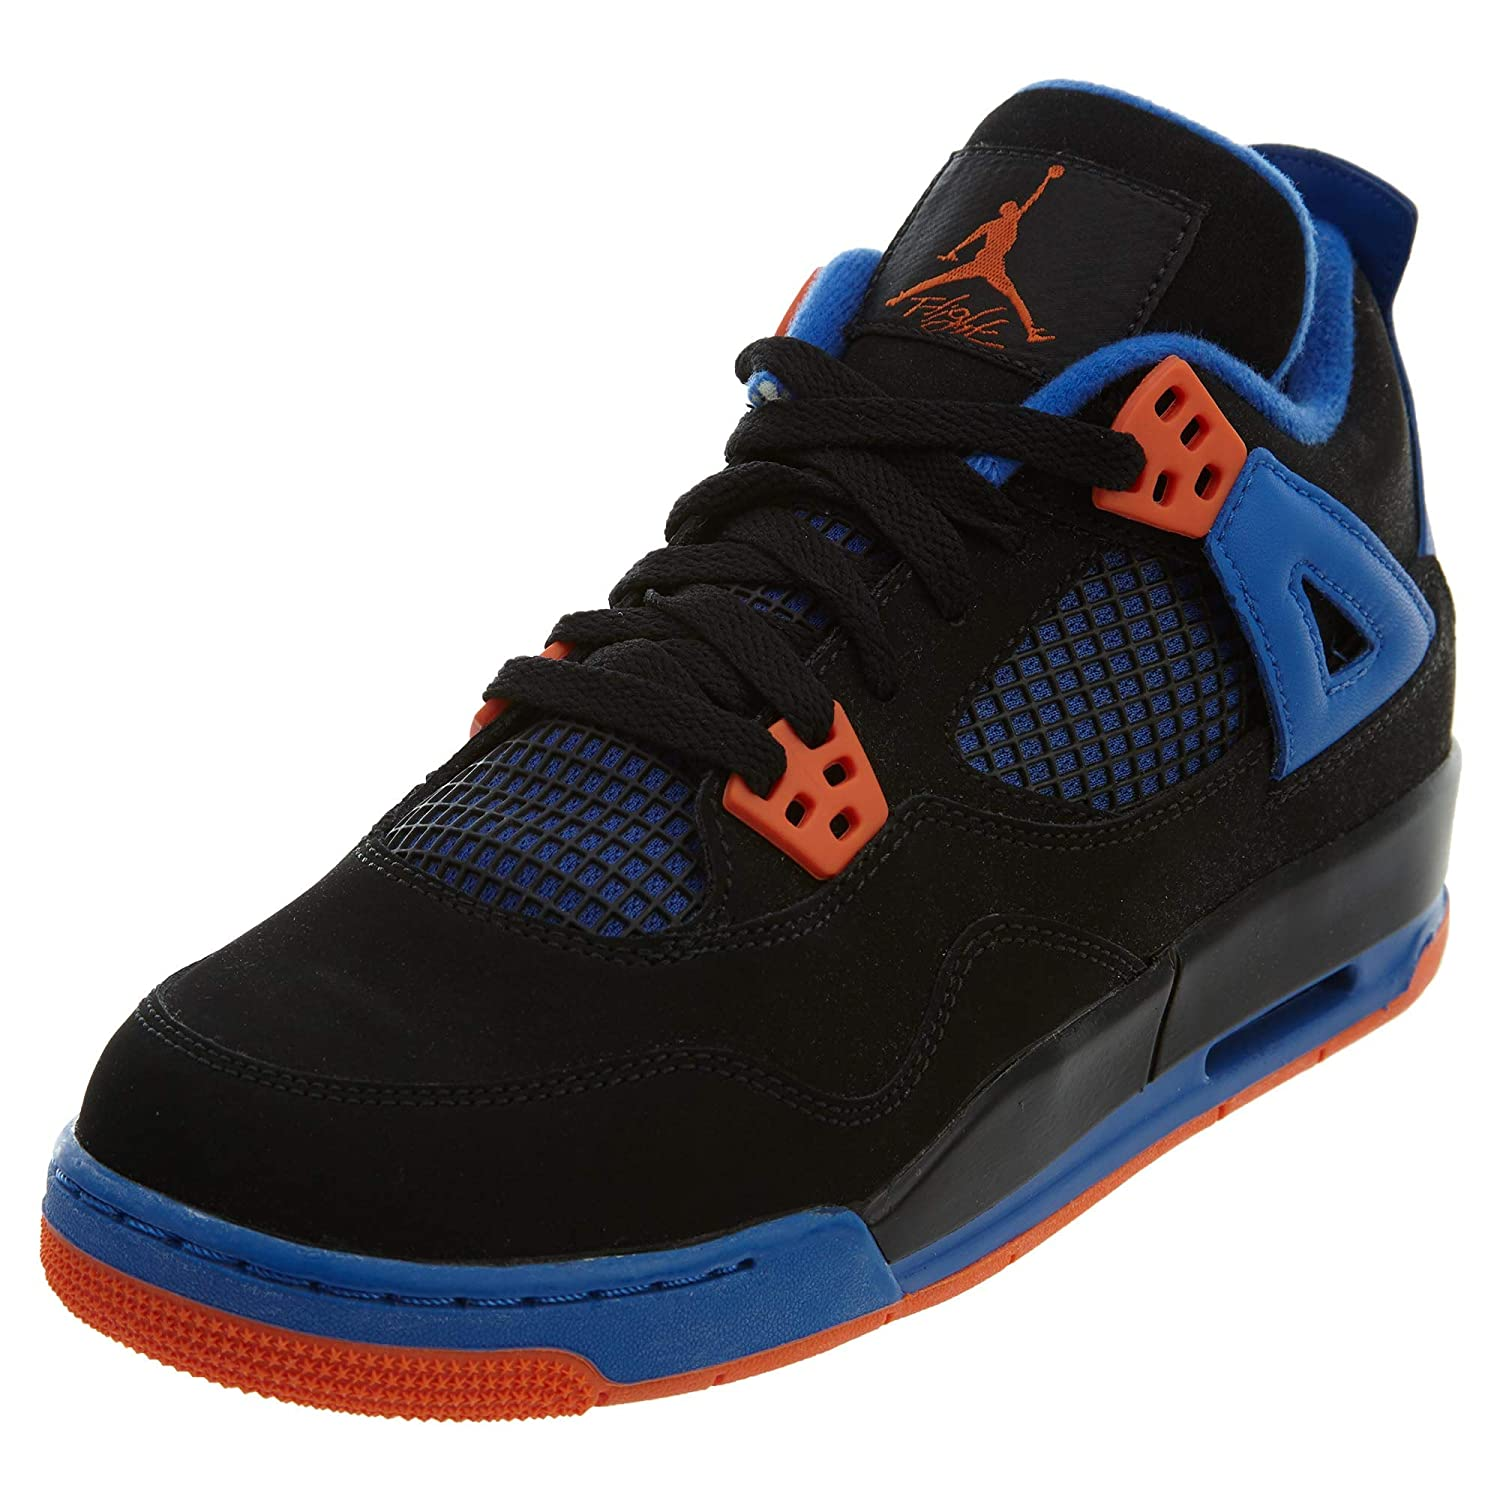 Noir Safety Orange Game Royal Nike Kobe X Elite Low Id, Chaussures de Basketball Homme 7Y GS